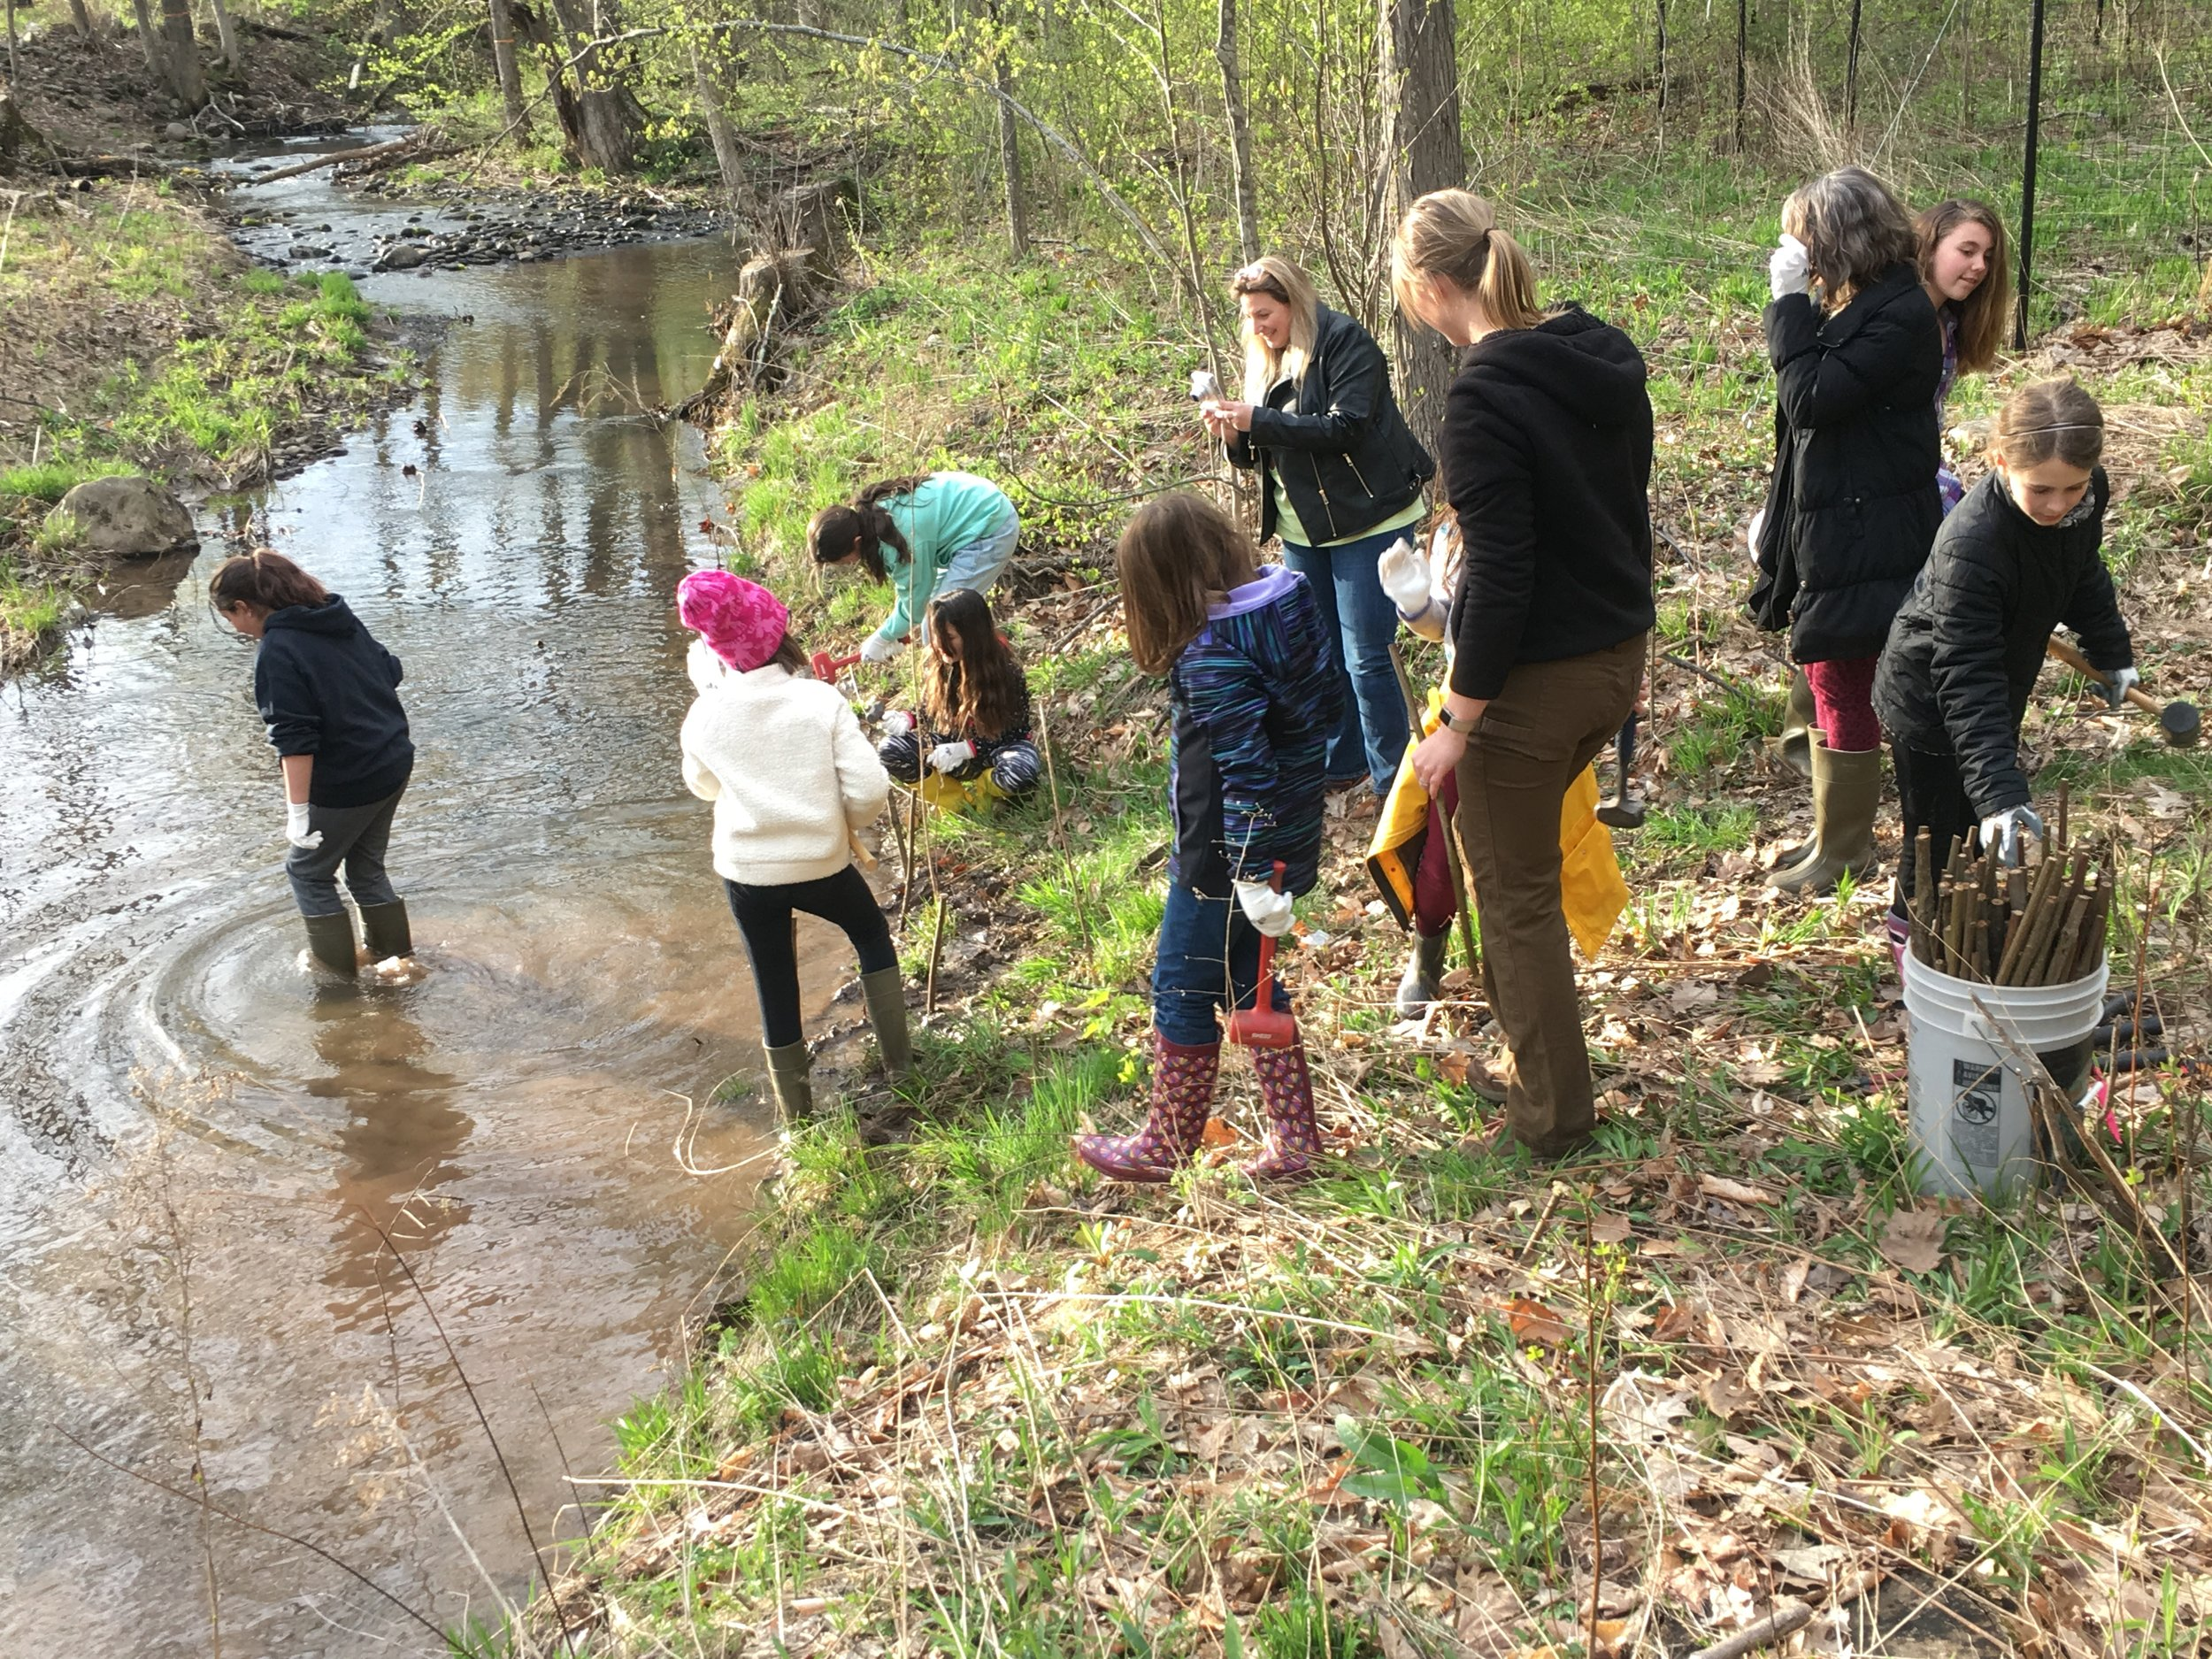 Bring your boots this Saturday to the Catskills Visitor Center to help with light trail maintenance and riparian area stream tree plantings.